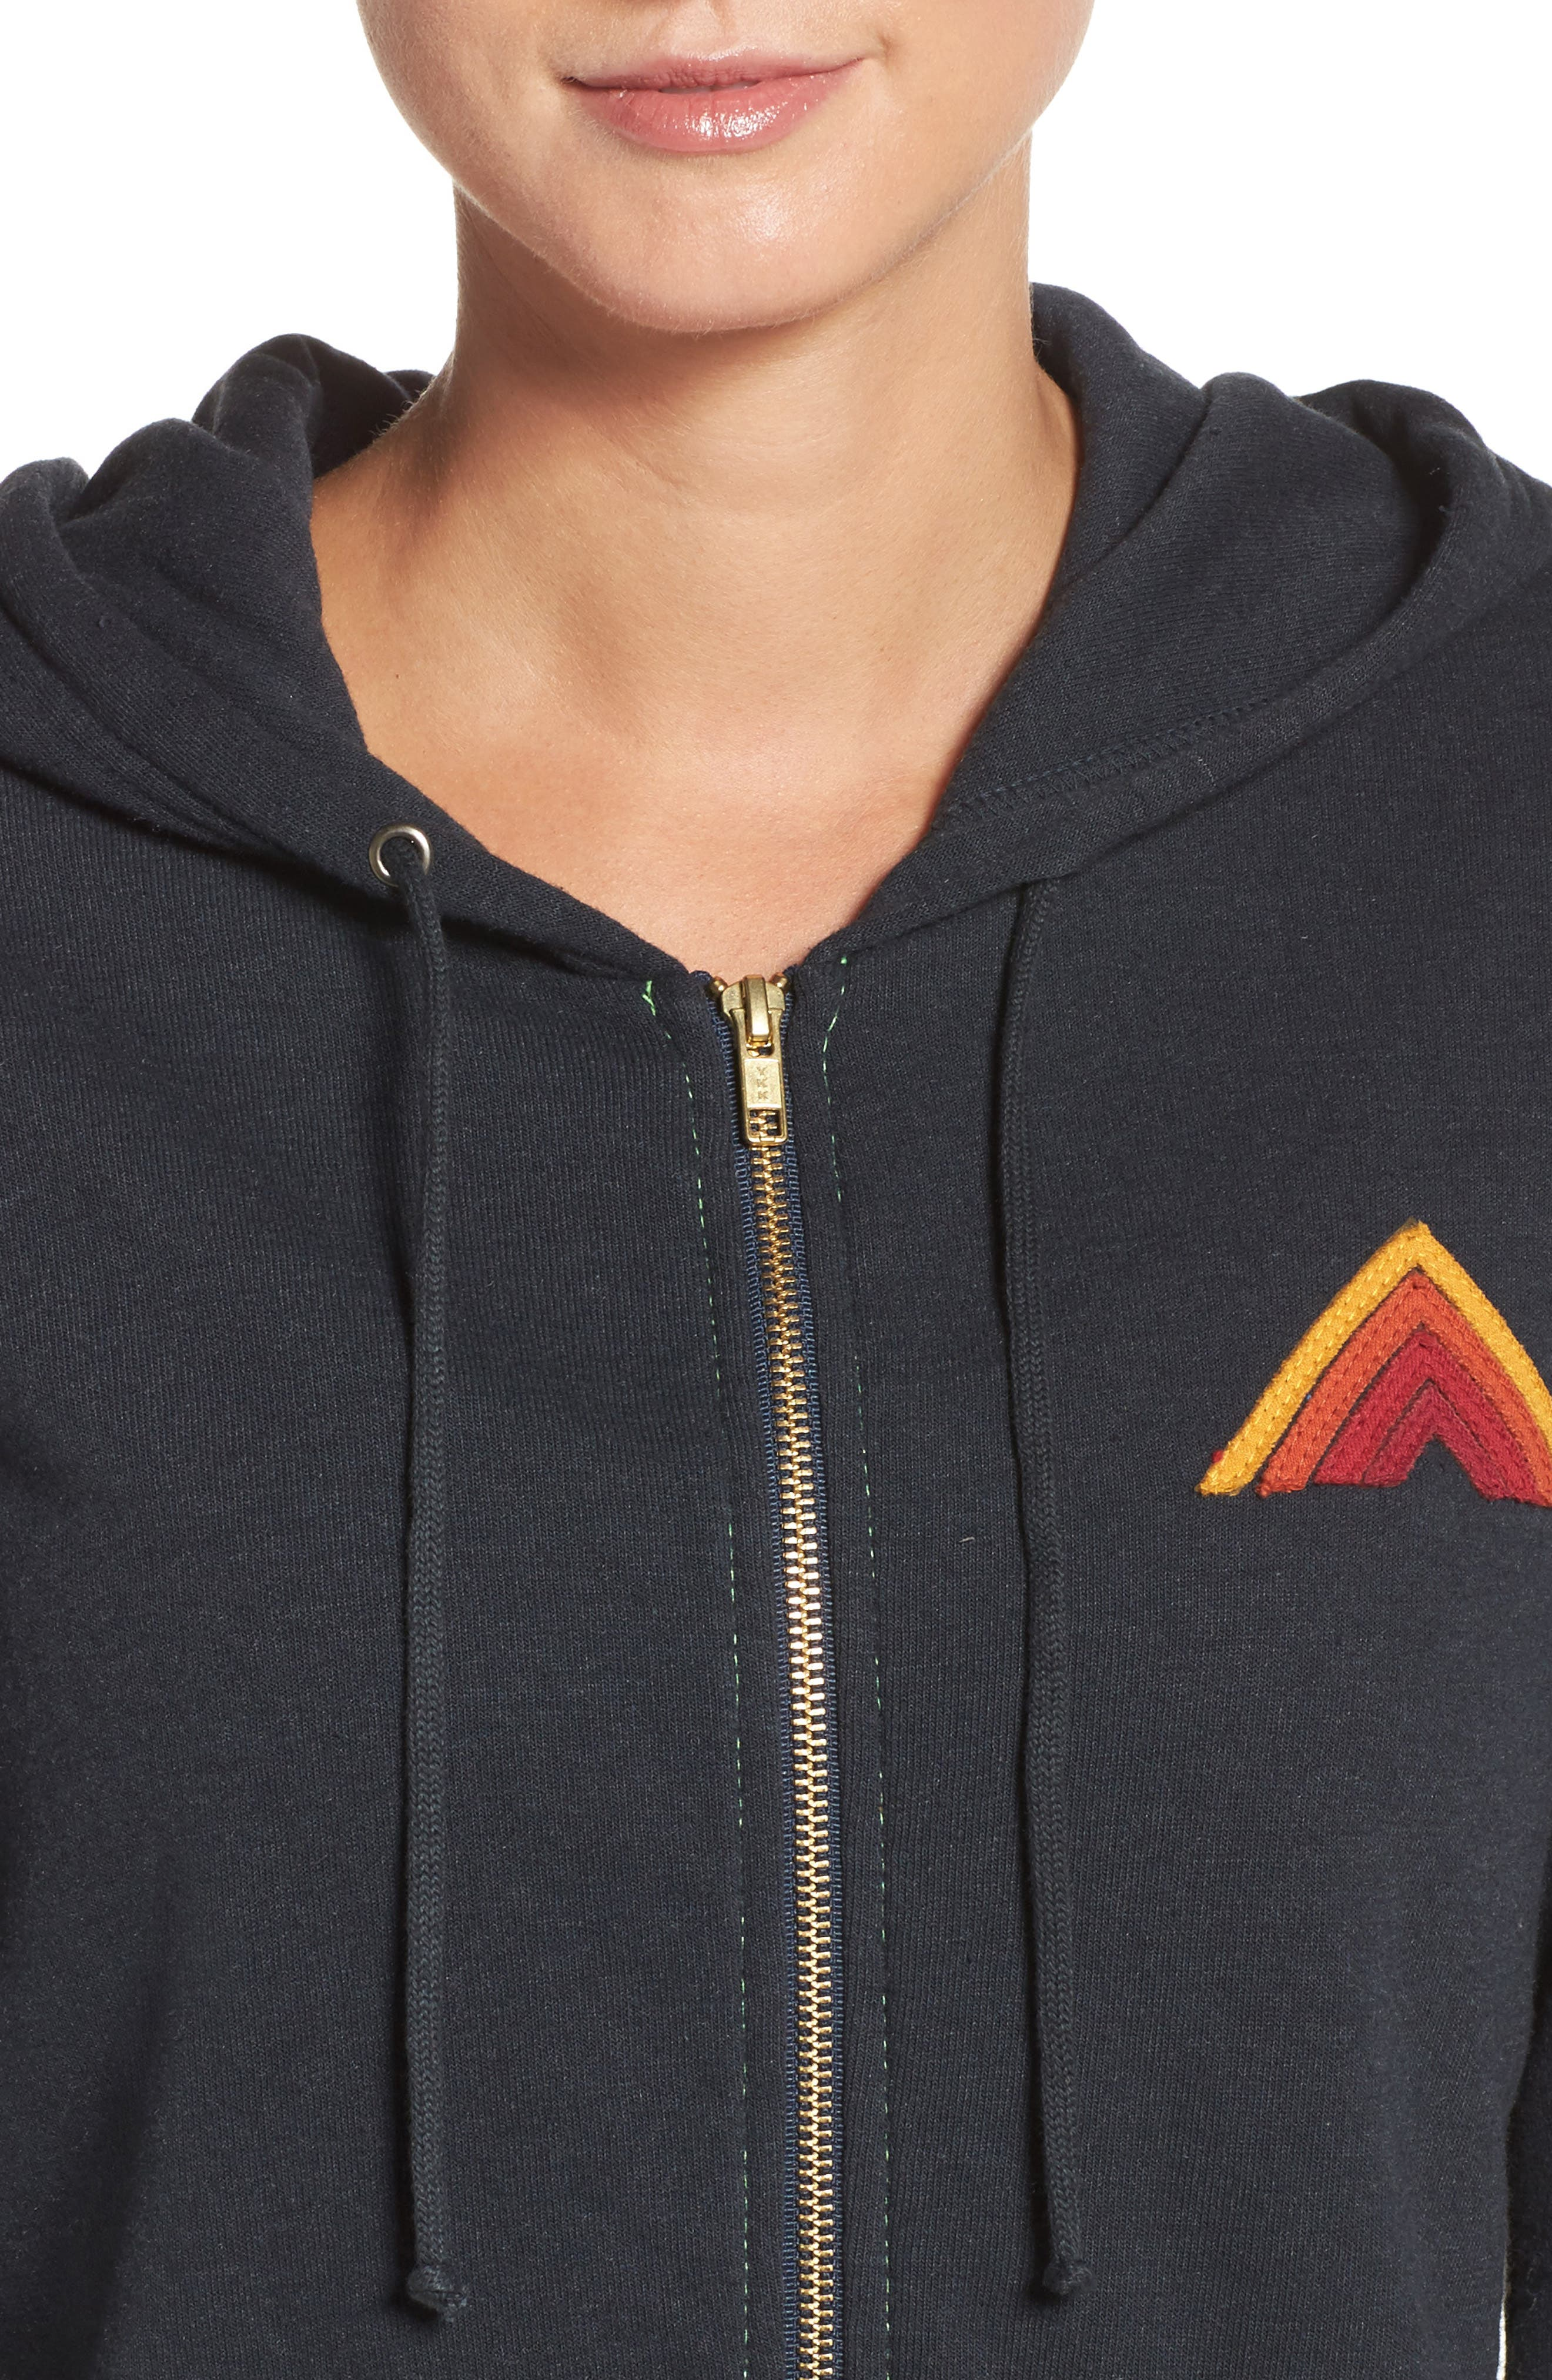 Mountain Stripe Zip Hoodie,                             Alternate thumbnail 4, color,                             Charcoal/ Red Stripes